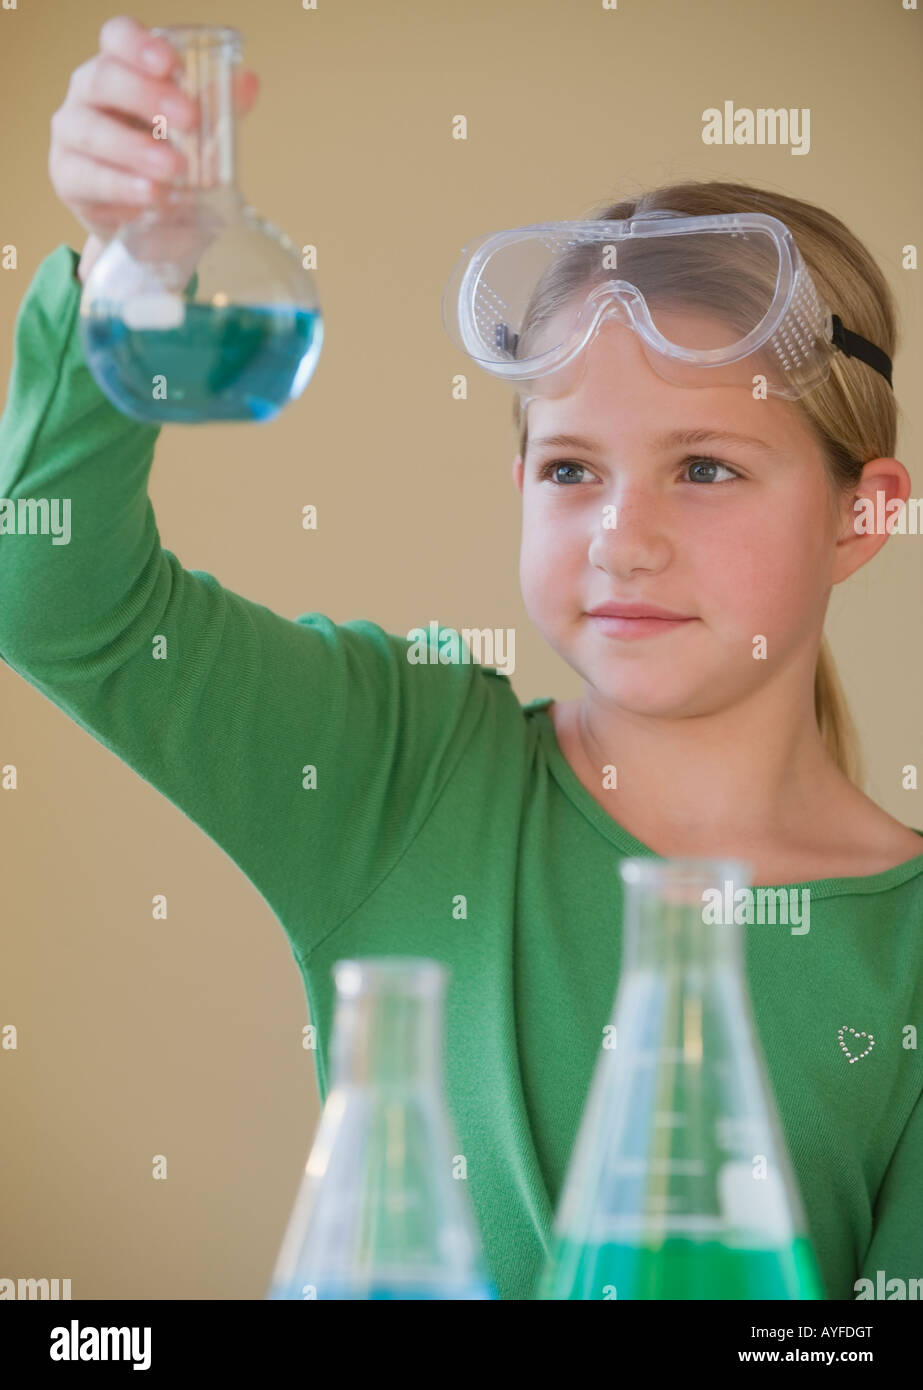 Girl in science class looking at beaker - Stock Image